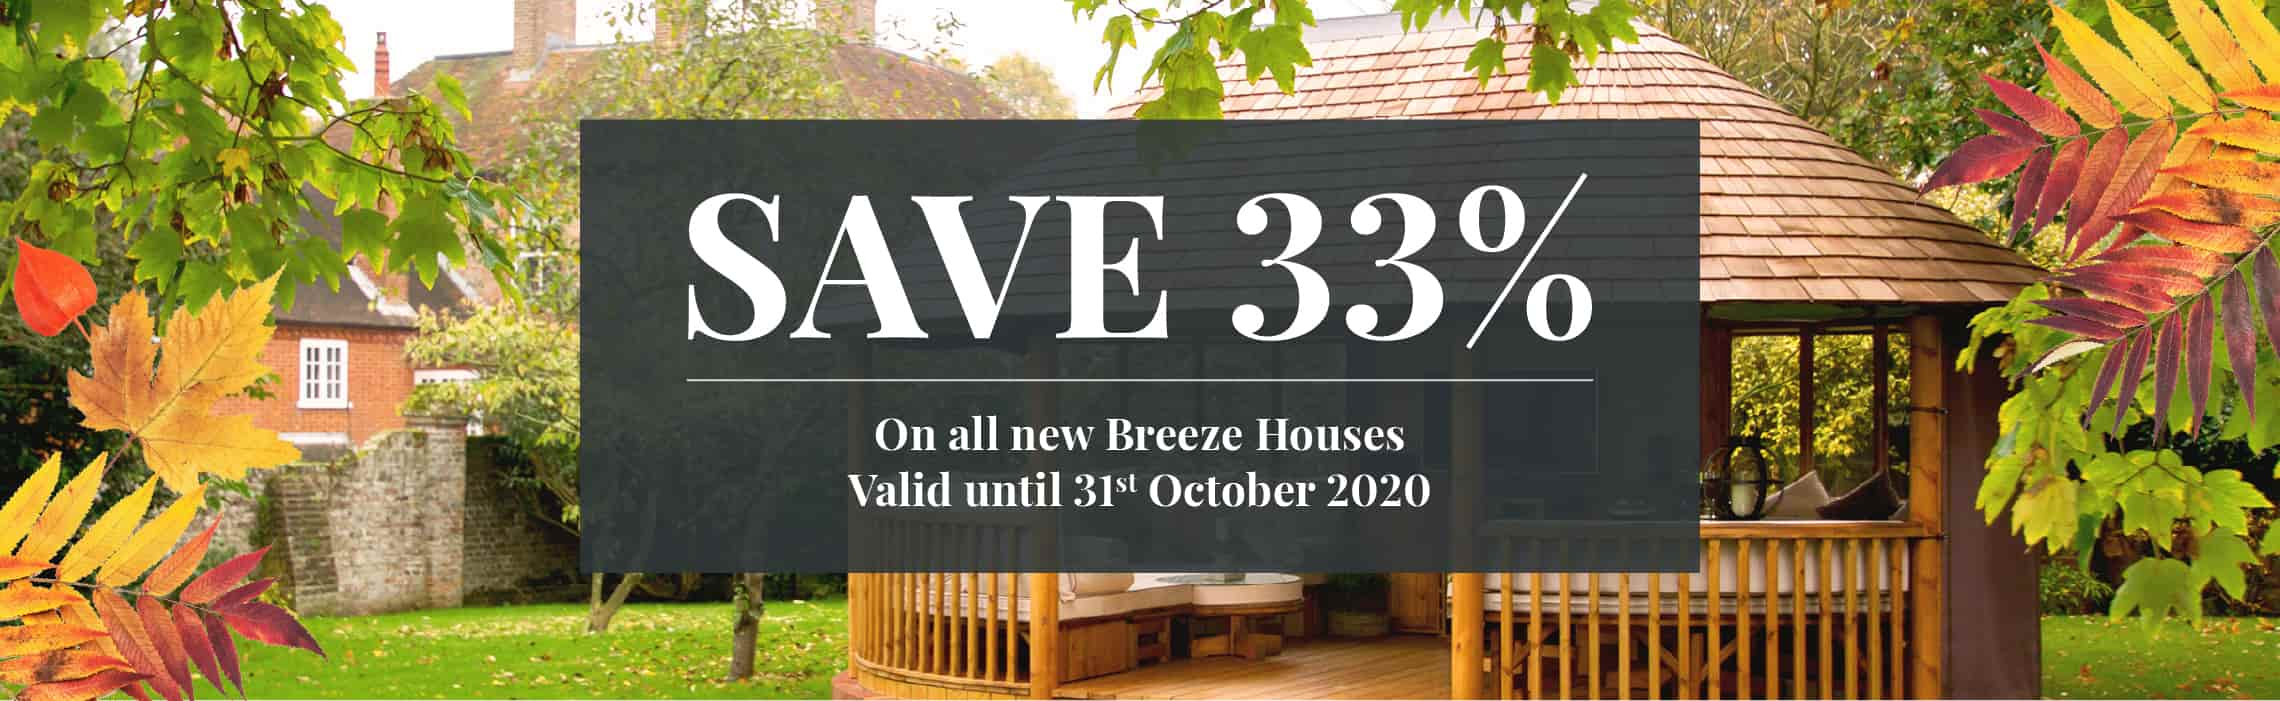 Save 33% on all new Breeze Houses